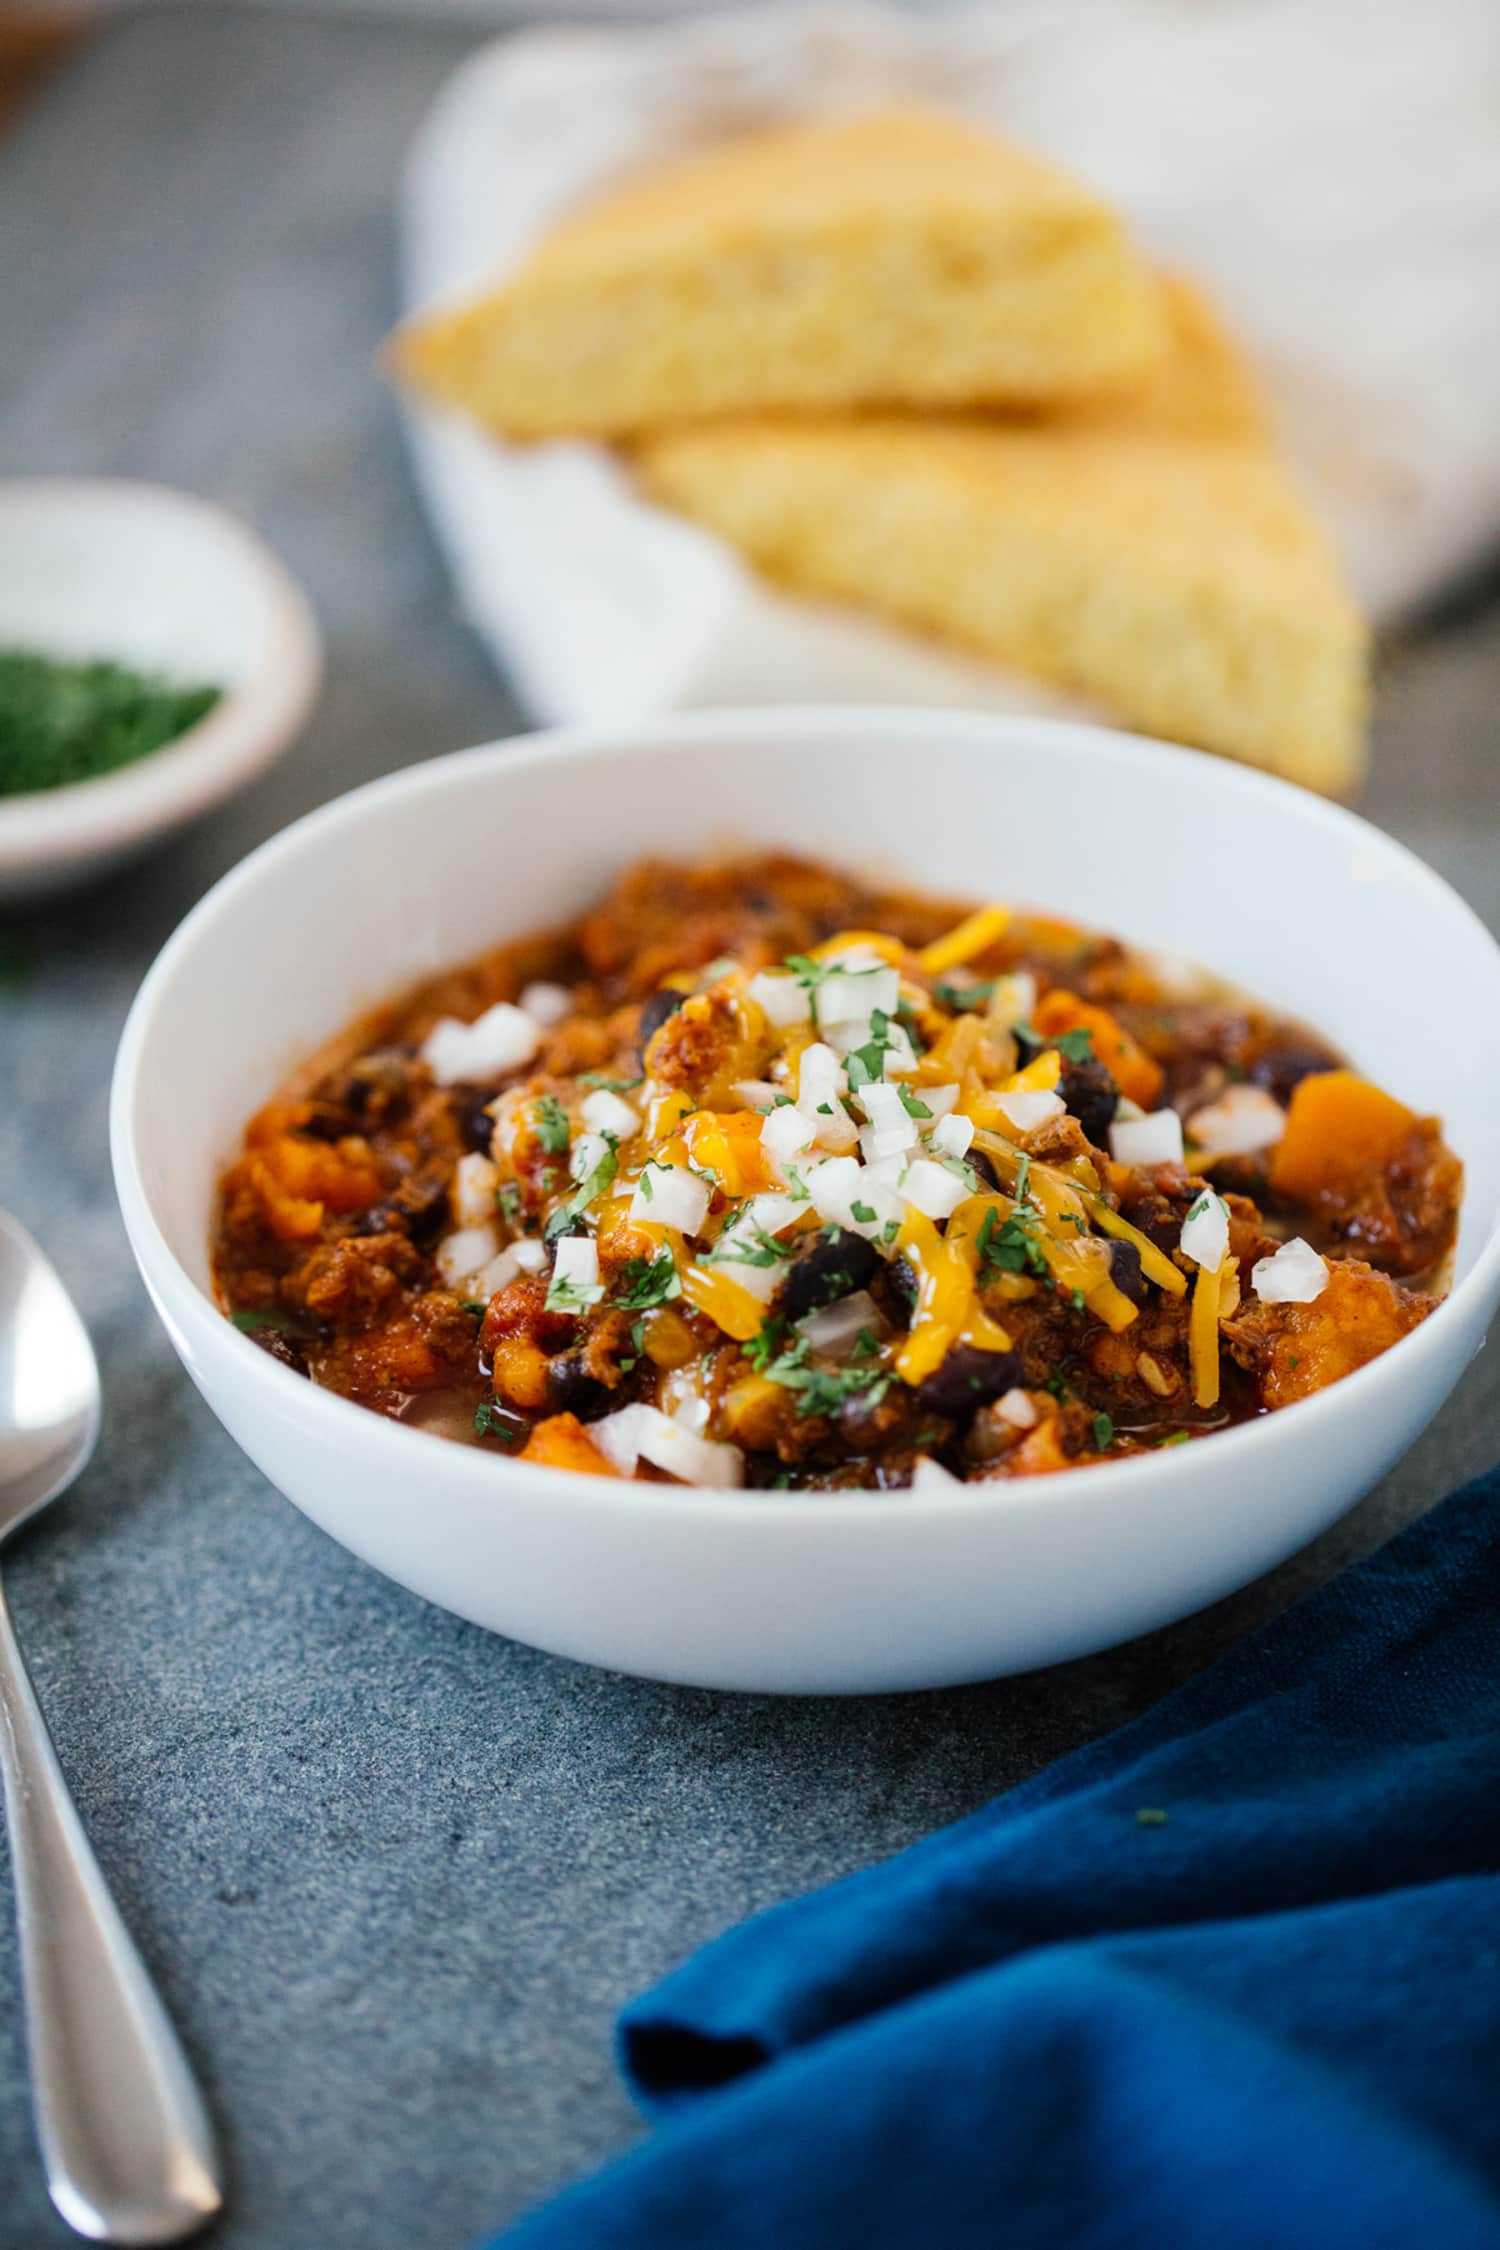 5 Mistakes to Avoid When Making Chili